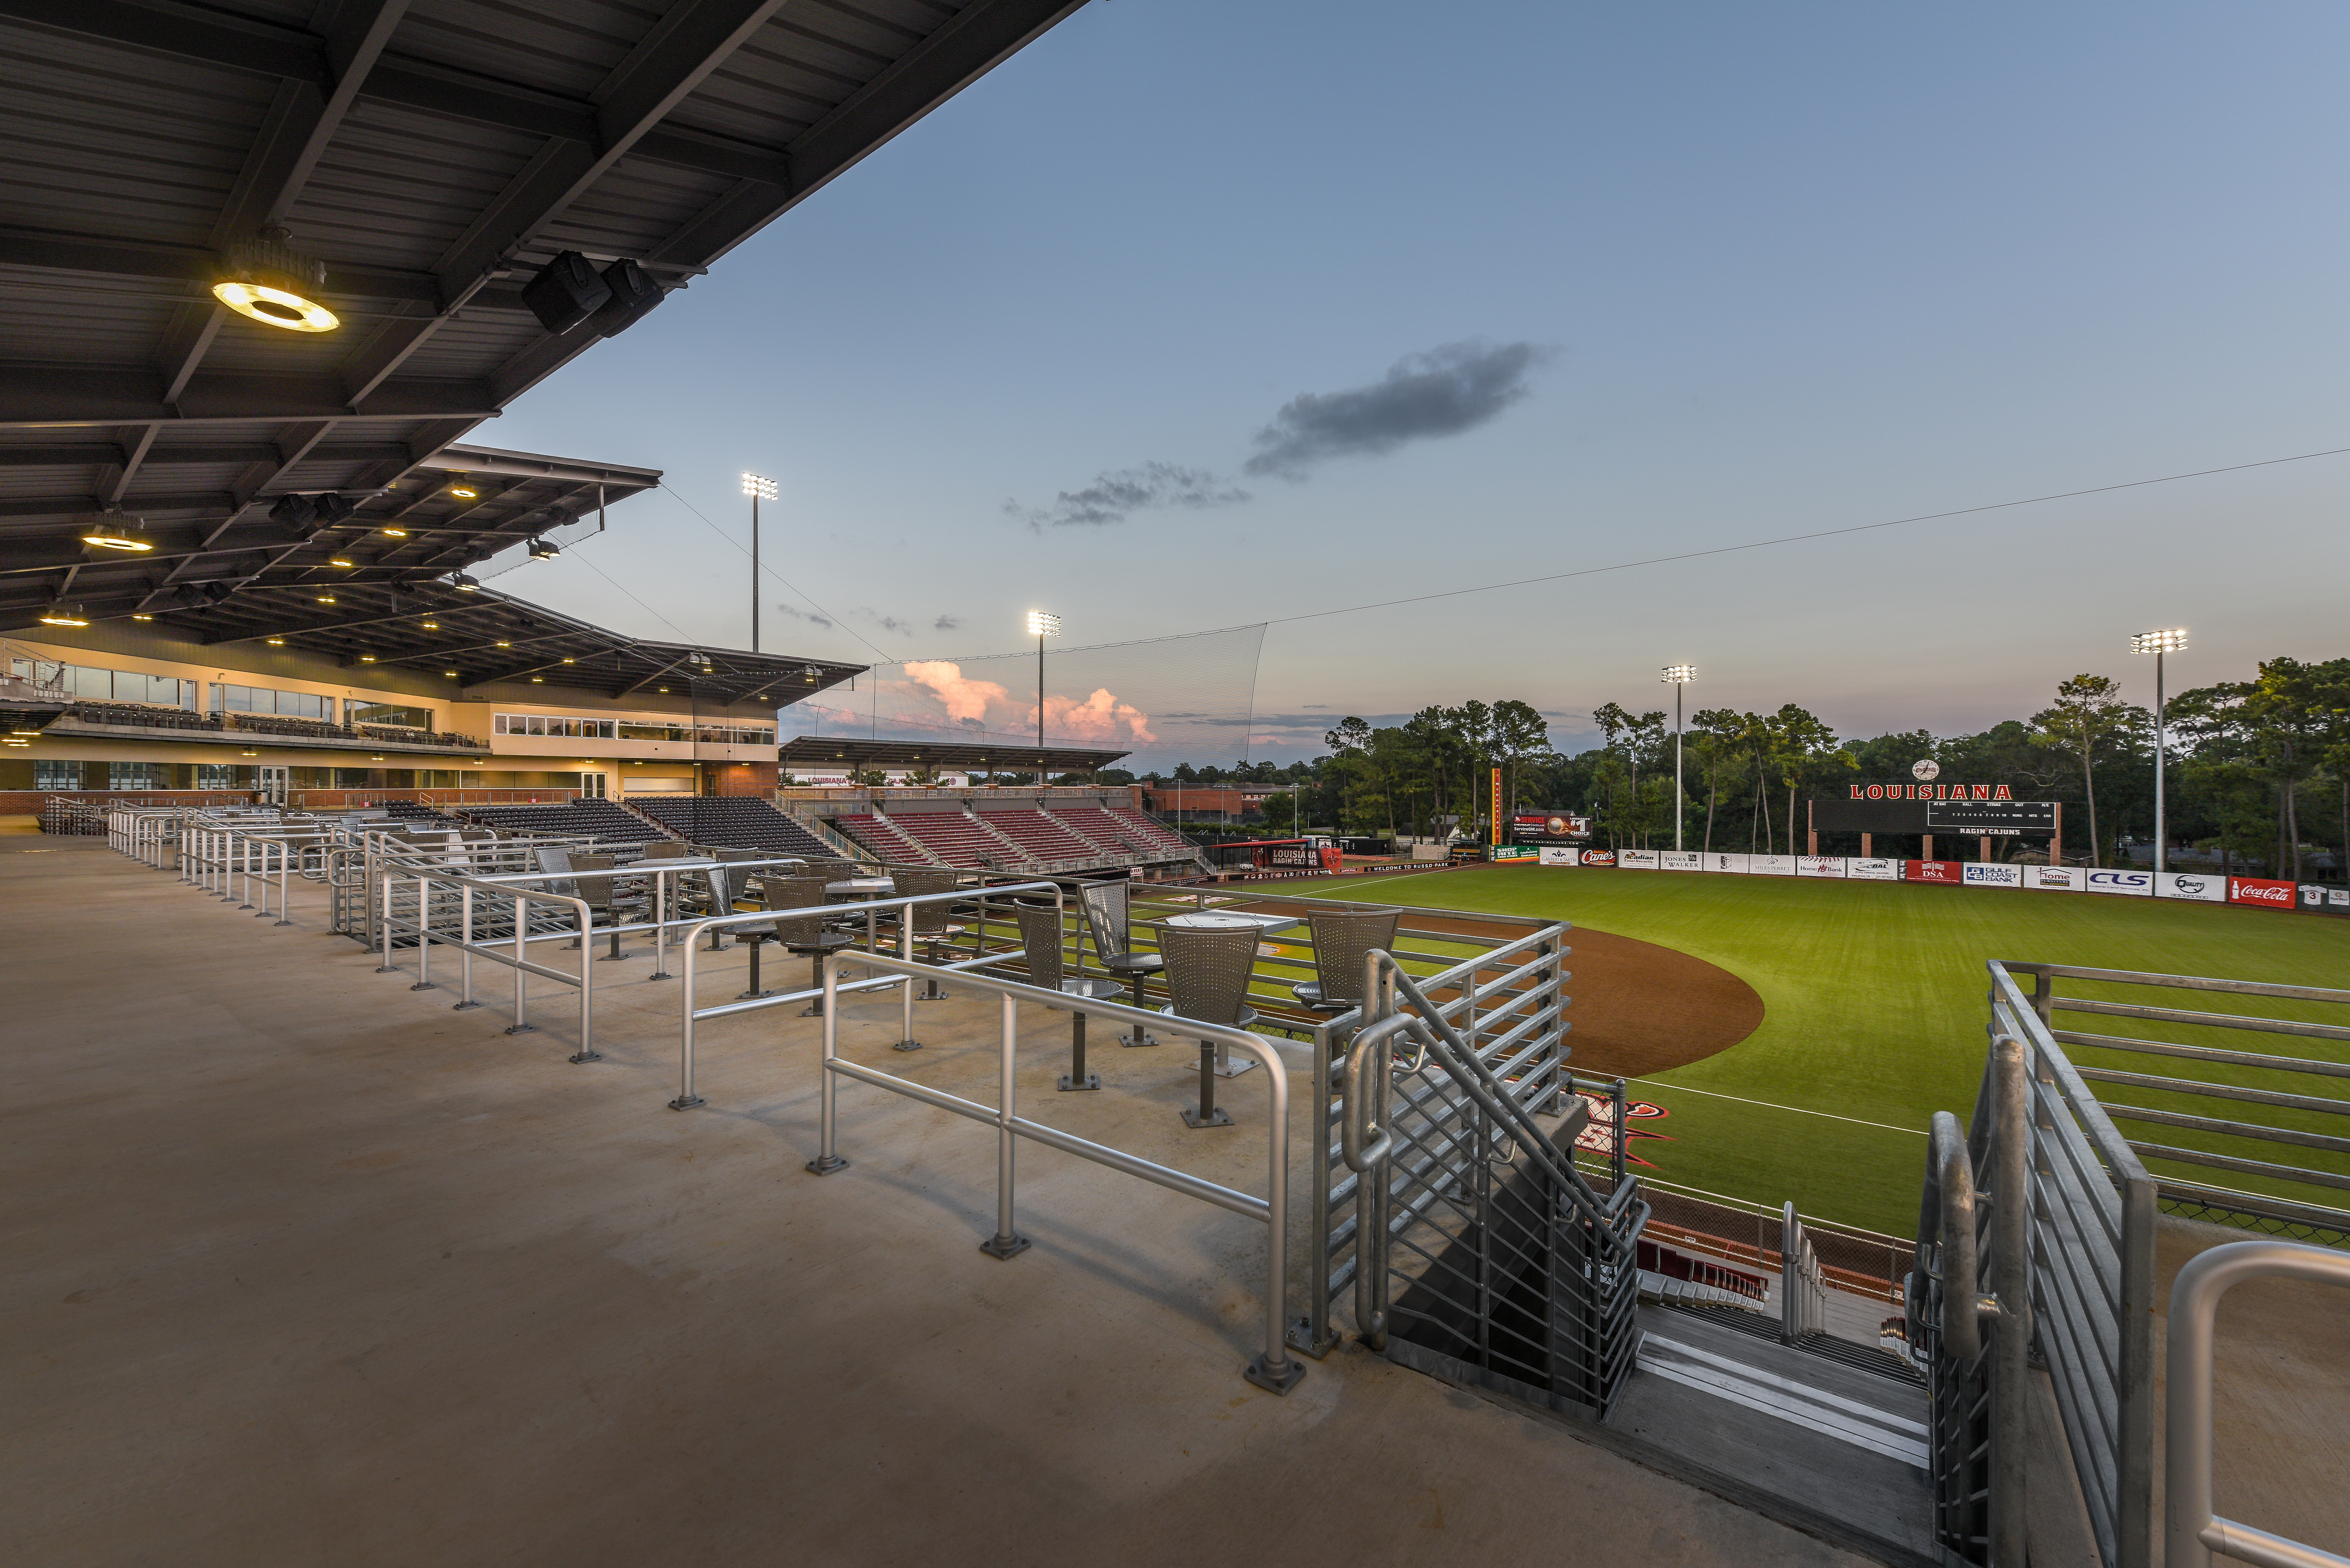 University of Louisiana at Lafayette Baseball Stadium Image